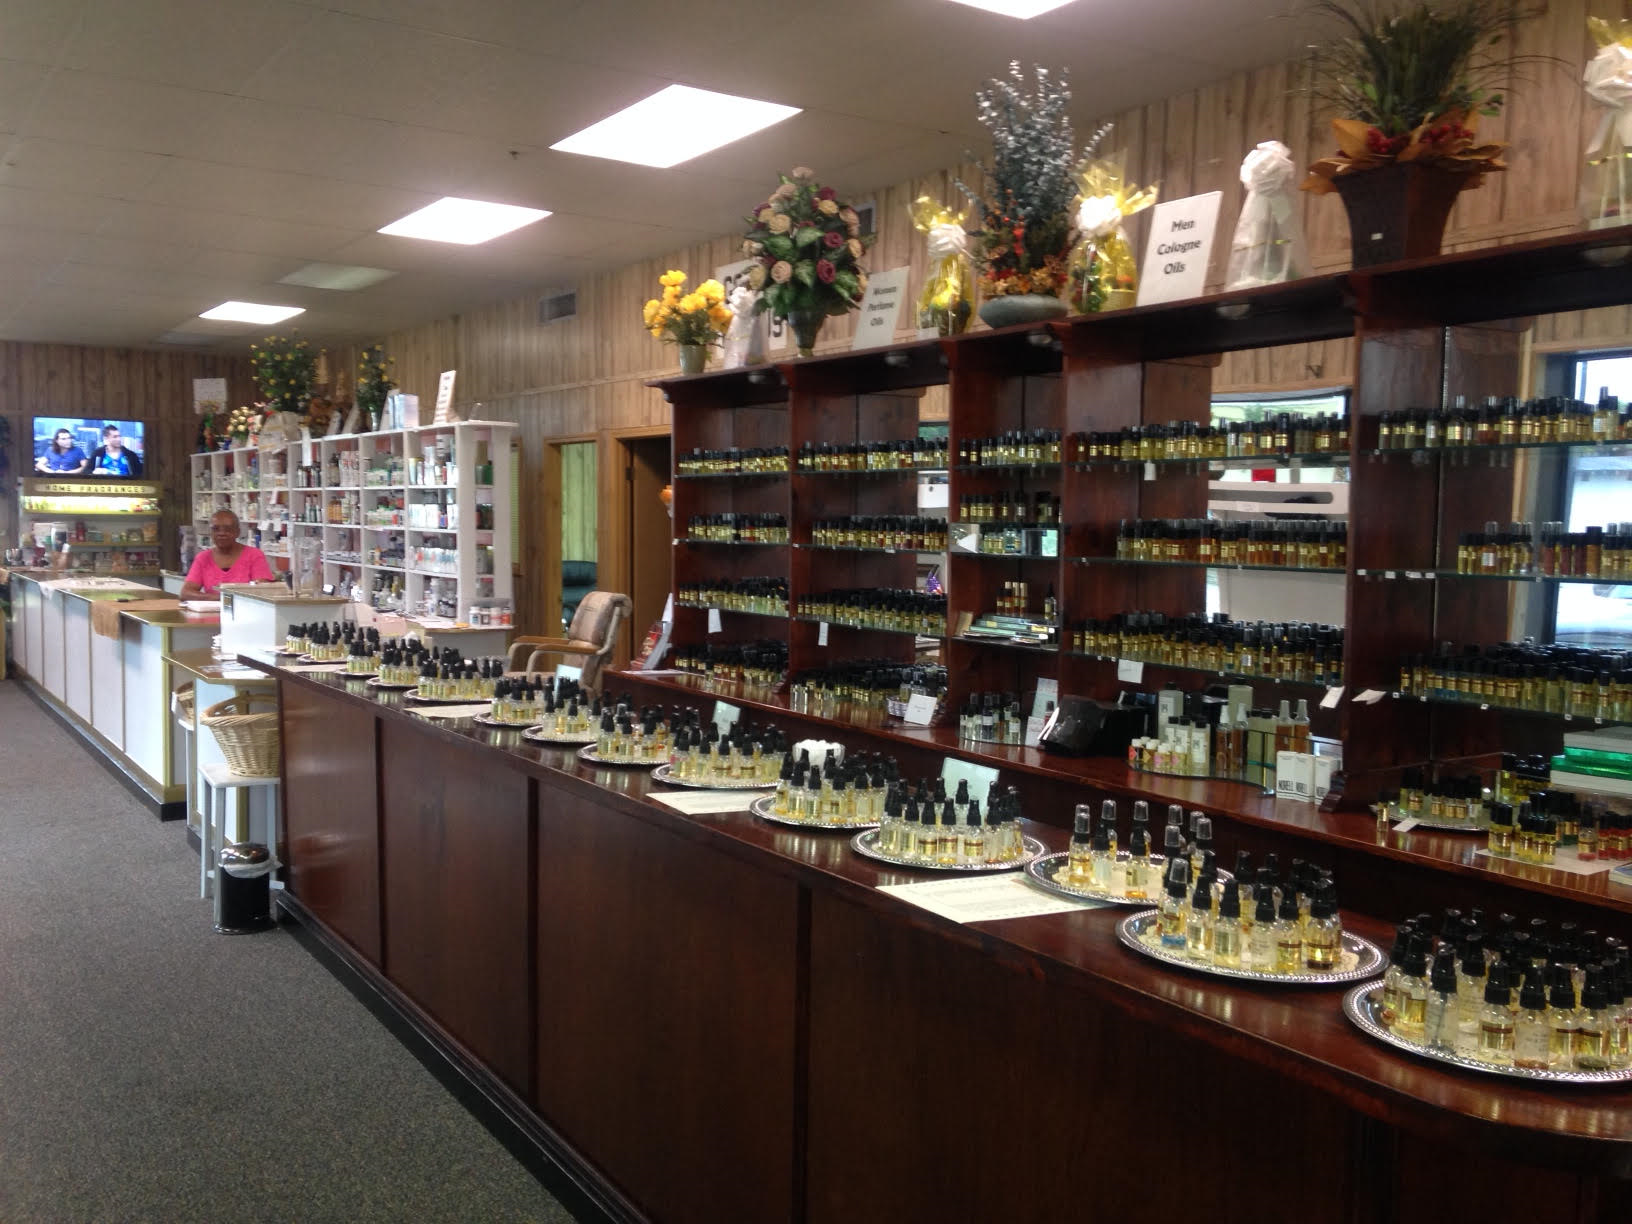 The Fragrance & Herbalist Shoppe image 1